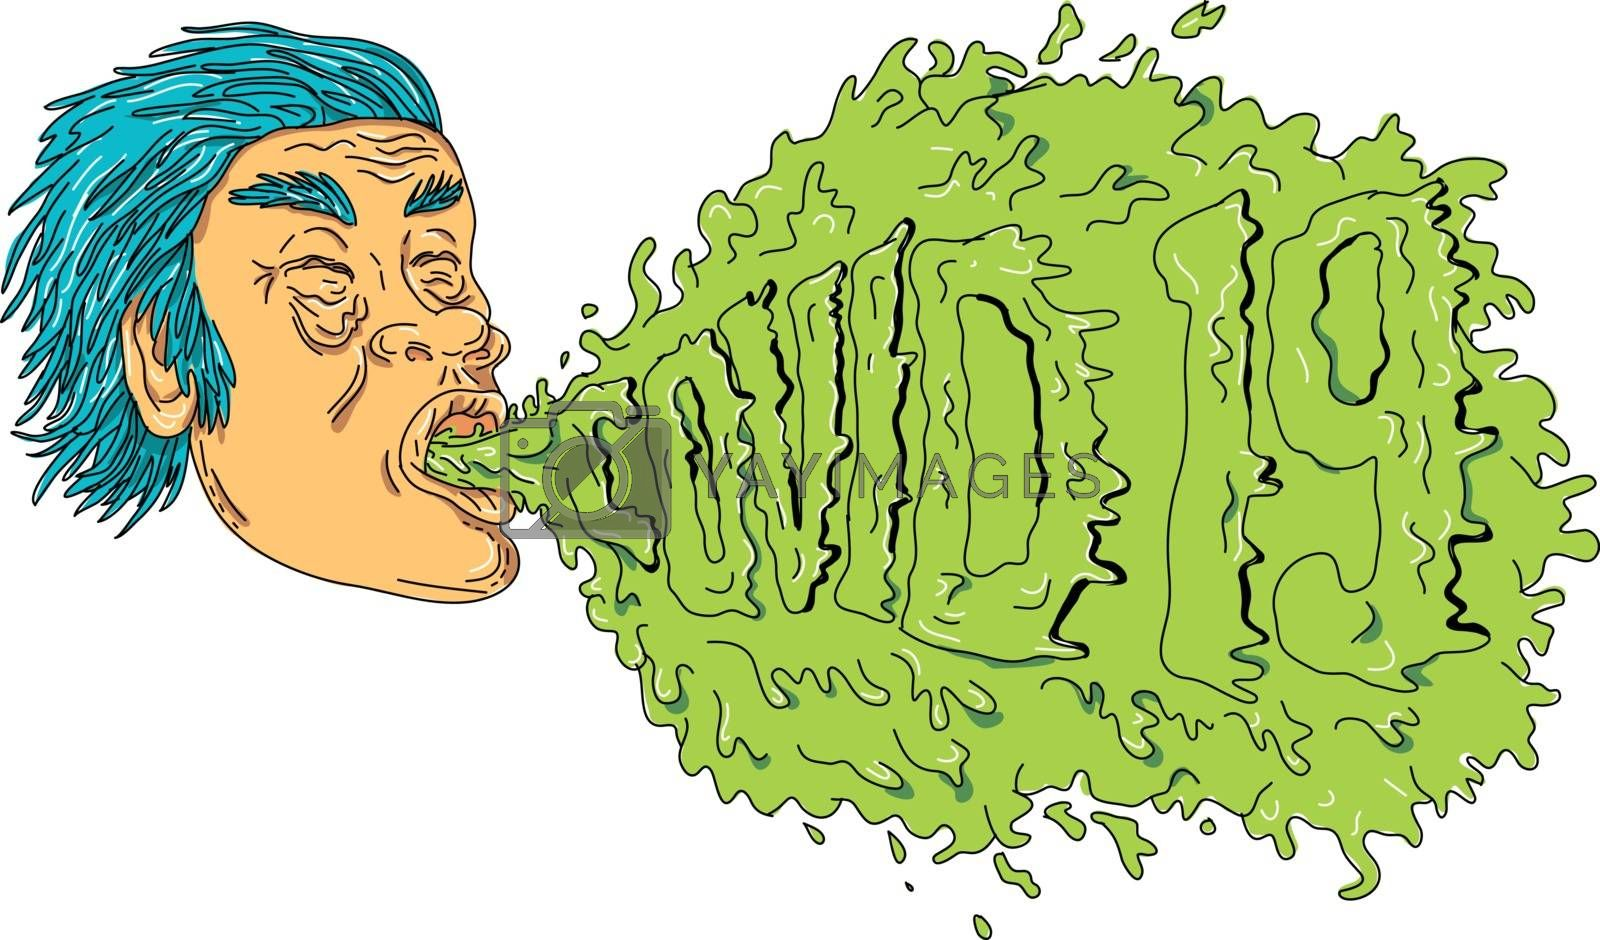 Grime art style illustration of a man with coronavirus, COVID-19 or 2019-nCoV, coughing or sneezing and spreading the virus infection on isolated white background